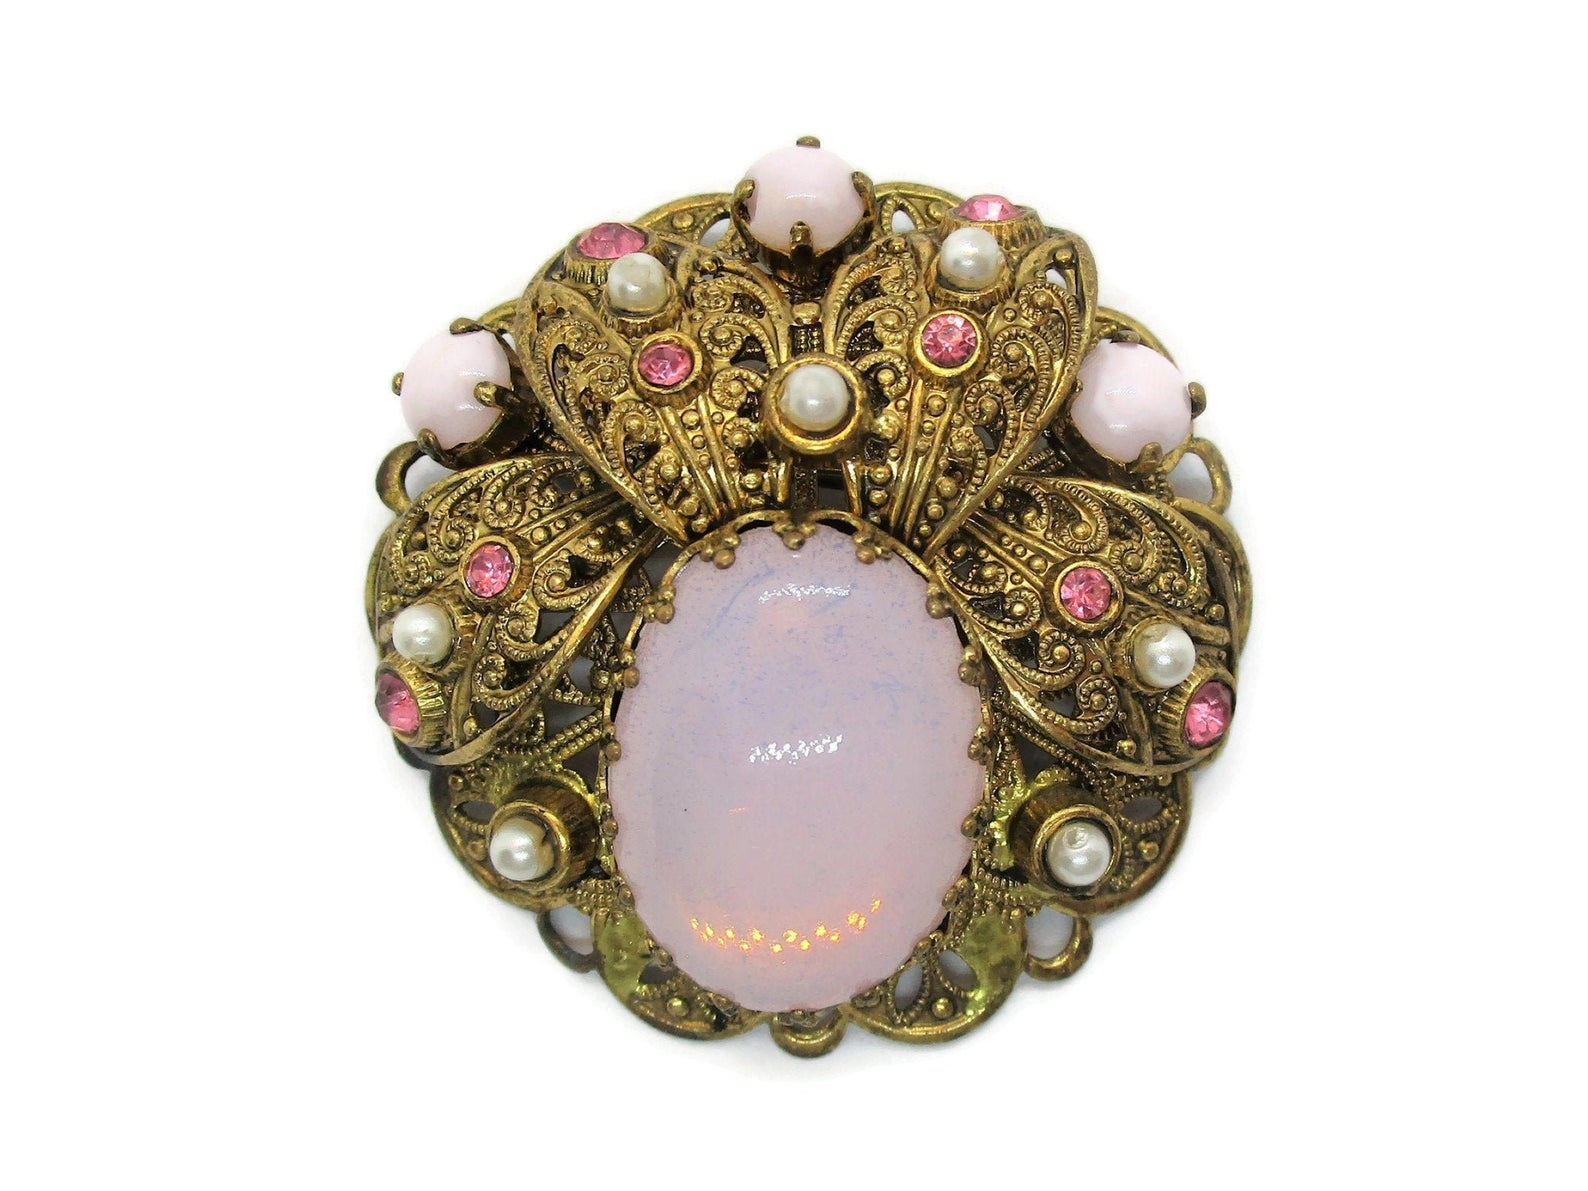 Gold brooch. The pink glass cabochon is the main feature. It is surrounded by gold embellishments, similar to a headdress. There are mini pink and beige colored pearls amongst the gold.